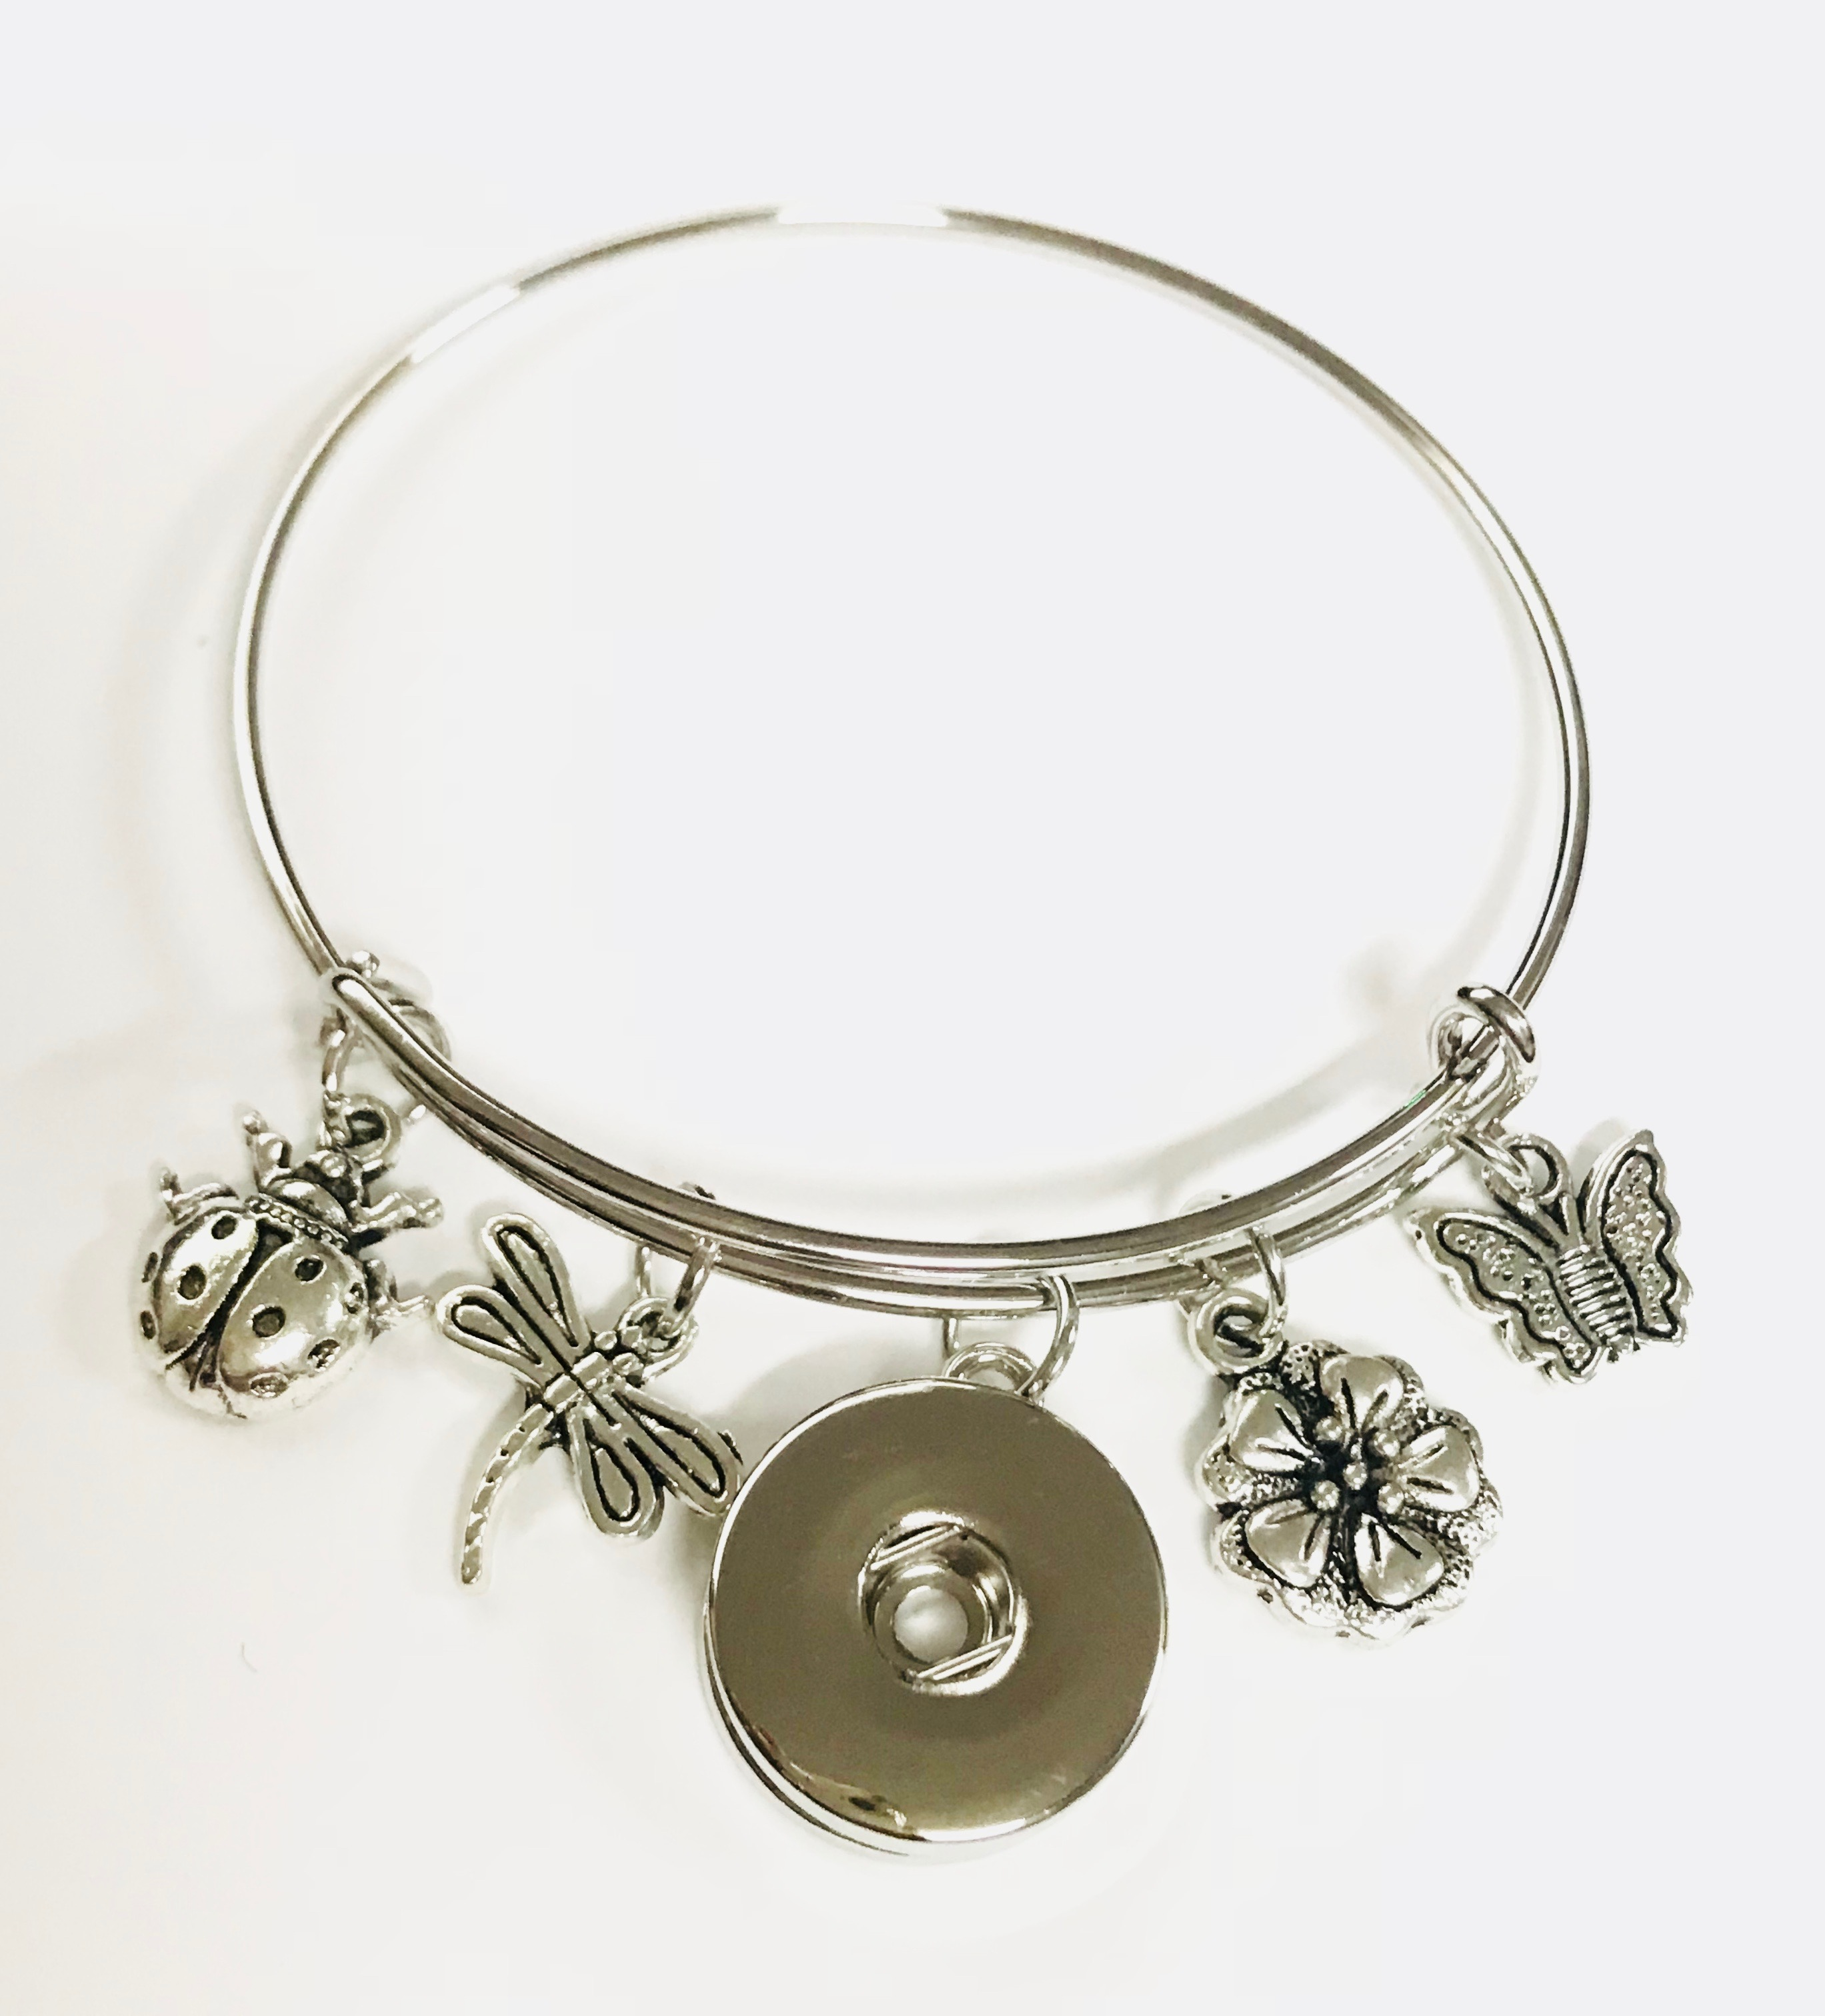 Snap Jewelry Wire Expandable Bangle - Dragonfly, Ladybug, & more